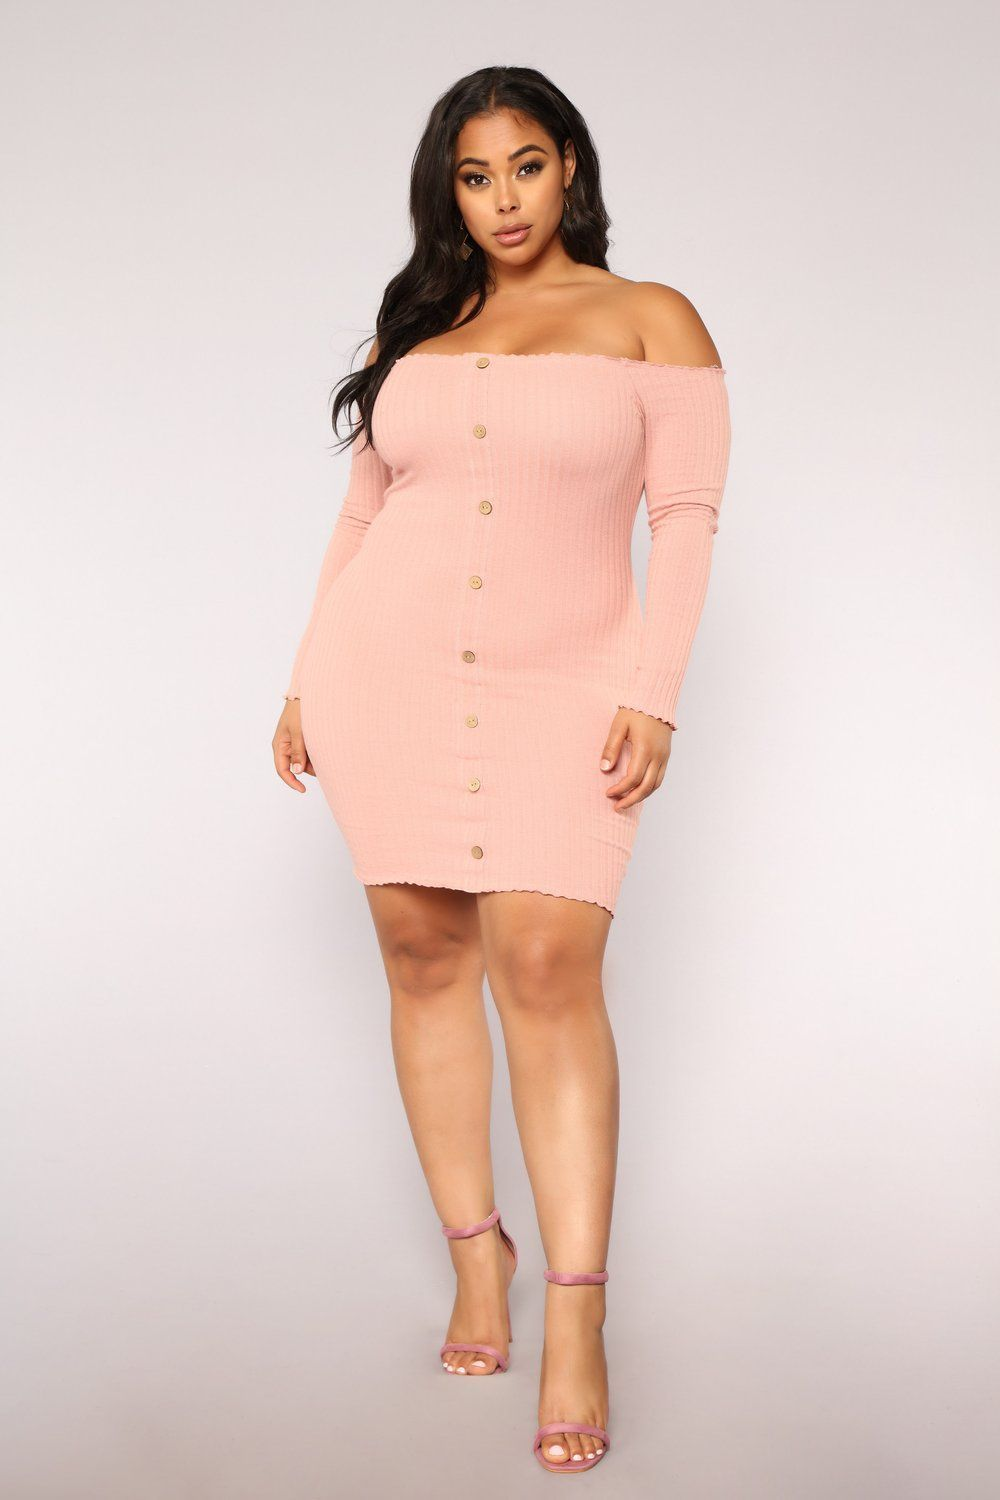 Never worn off the shoulder light pink mini dress from